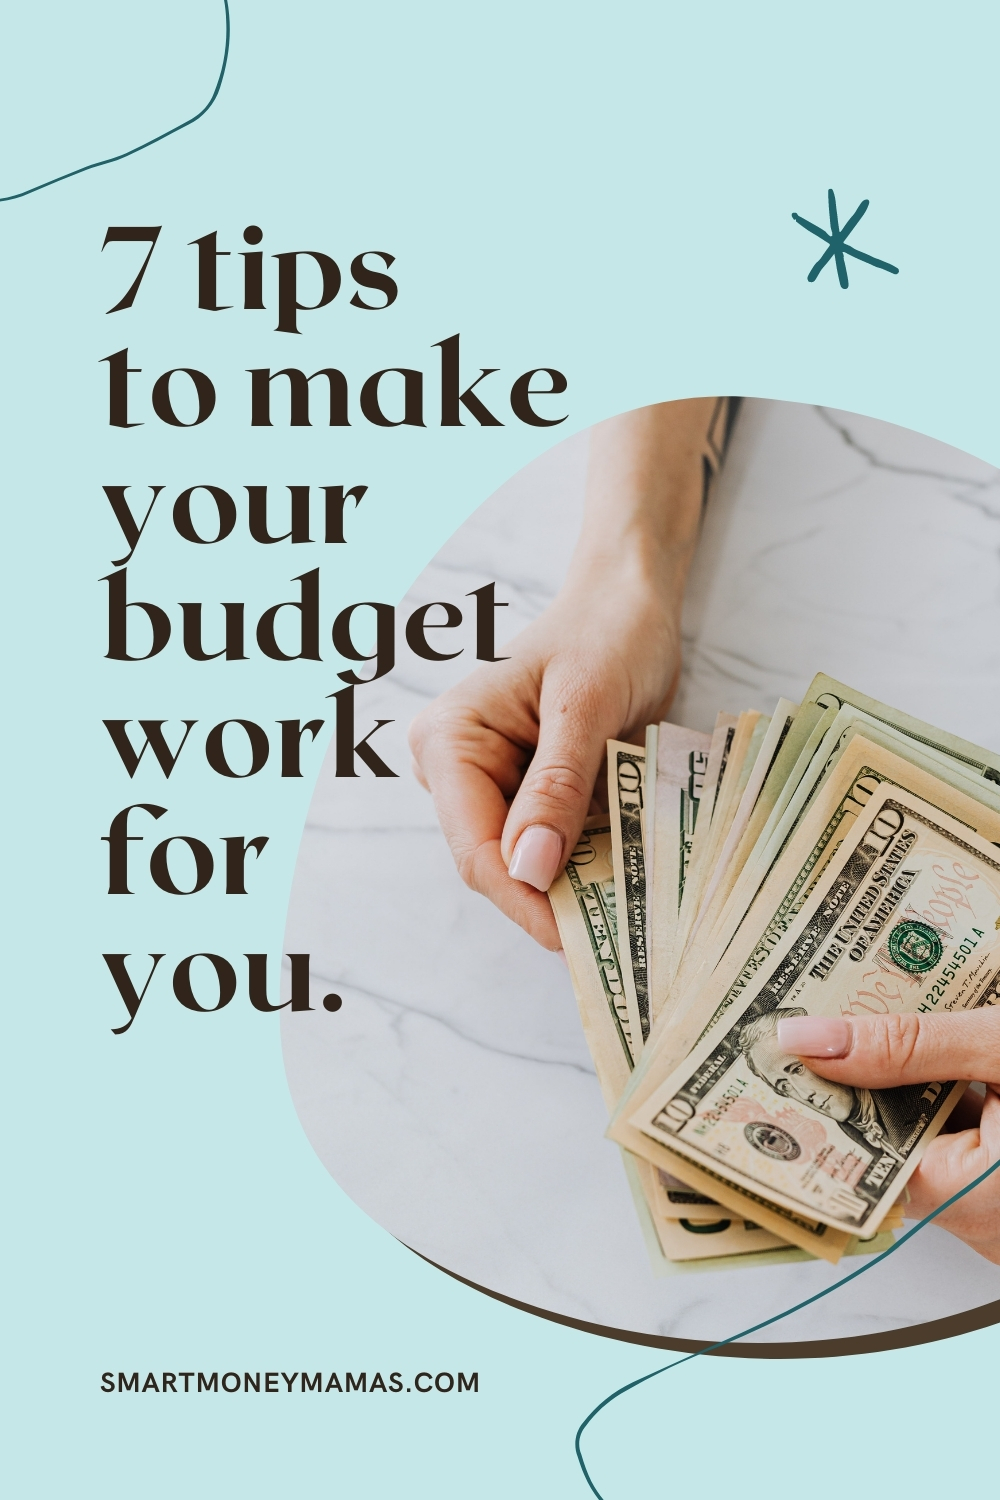 7 tips to make your budget work for you